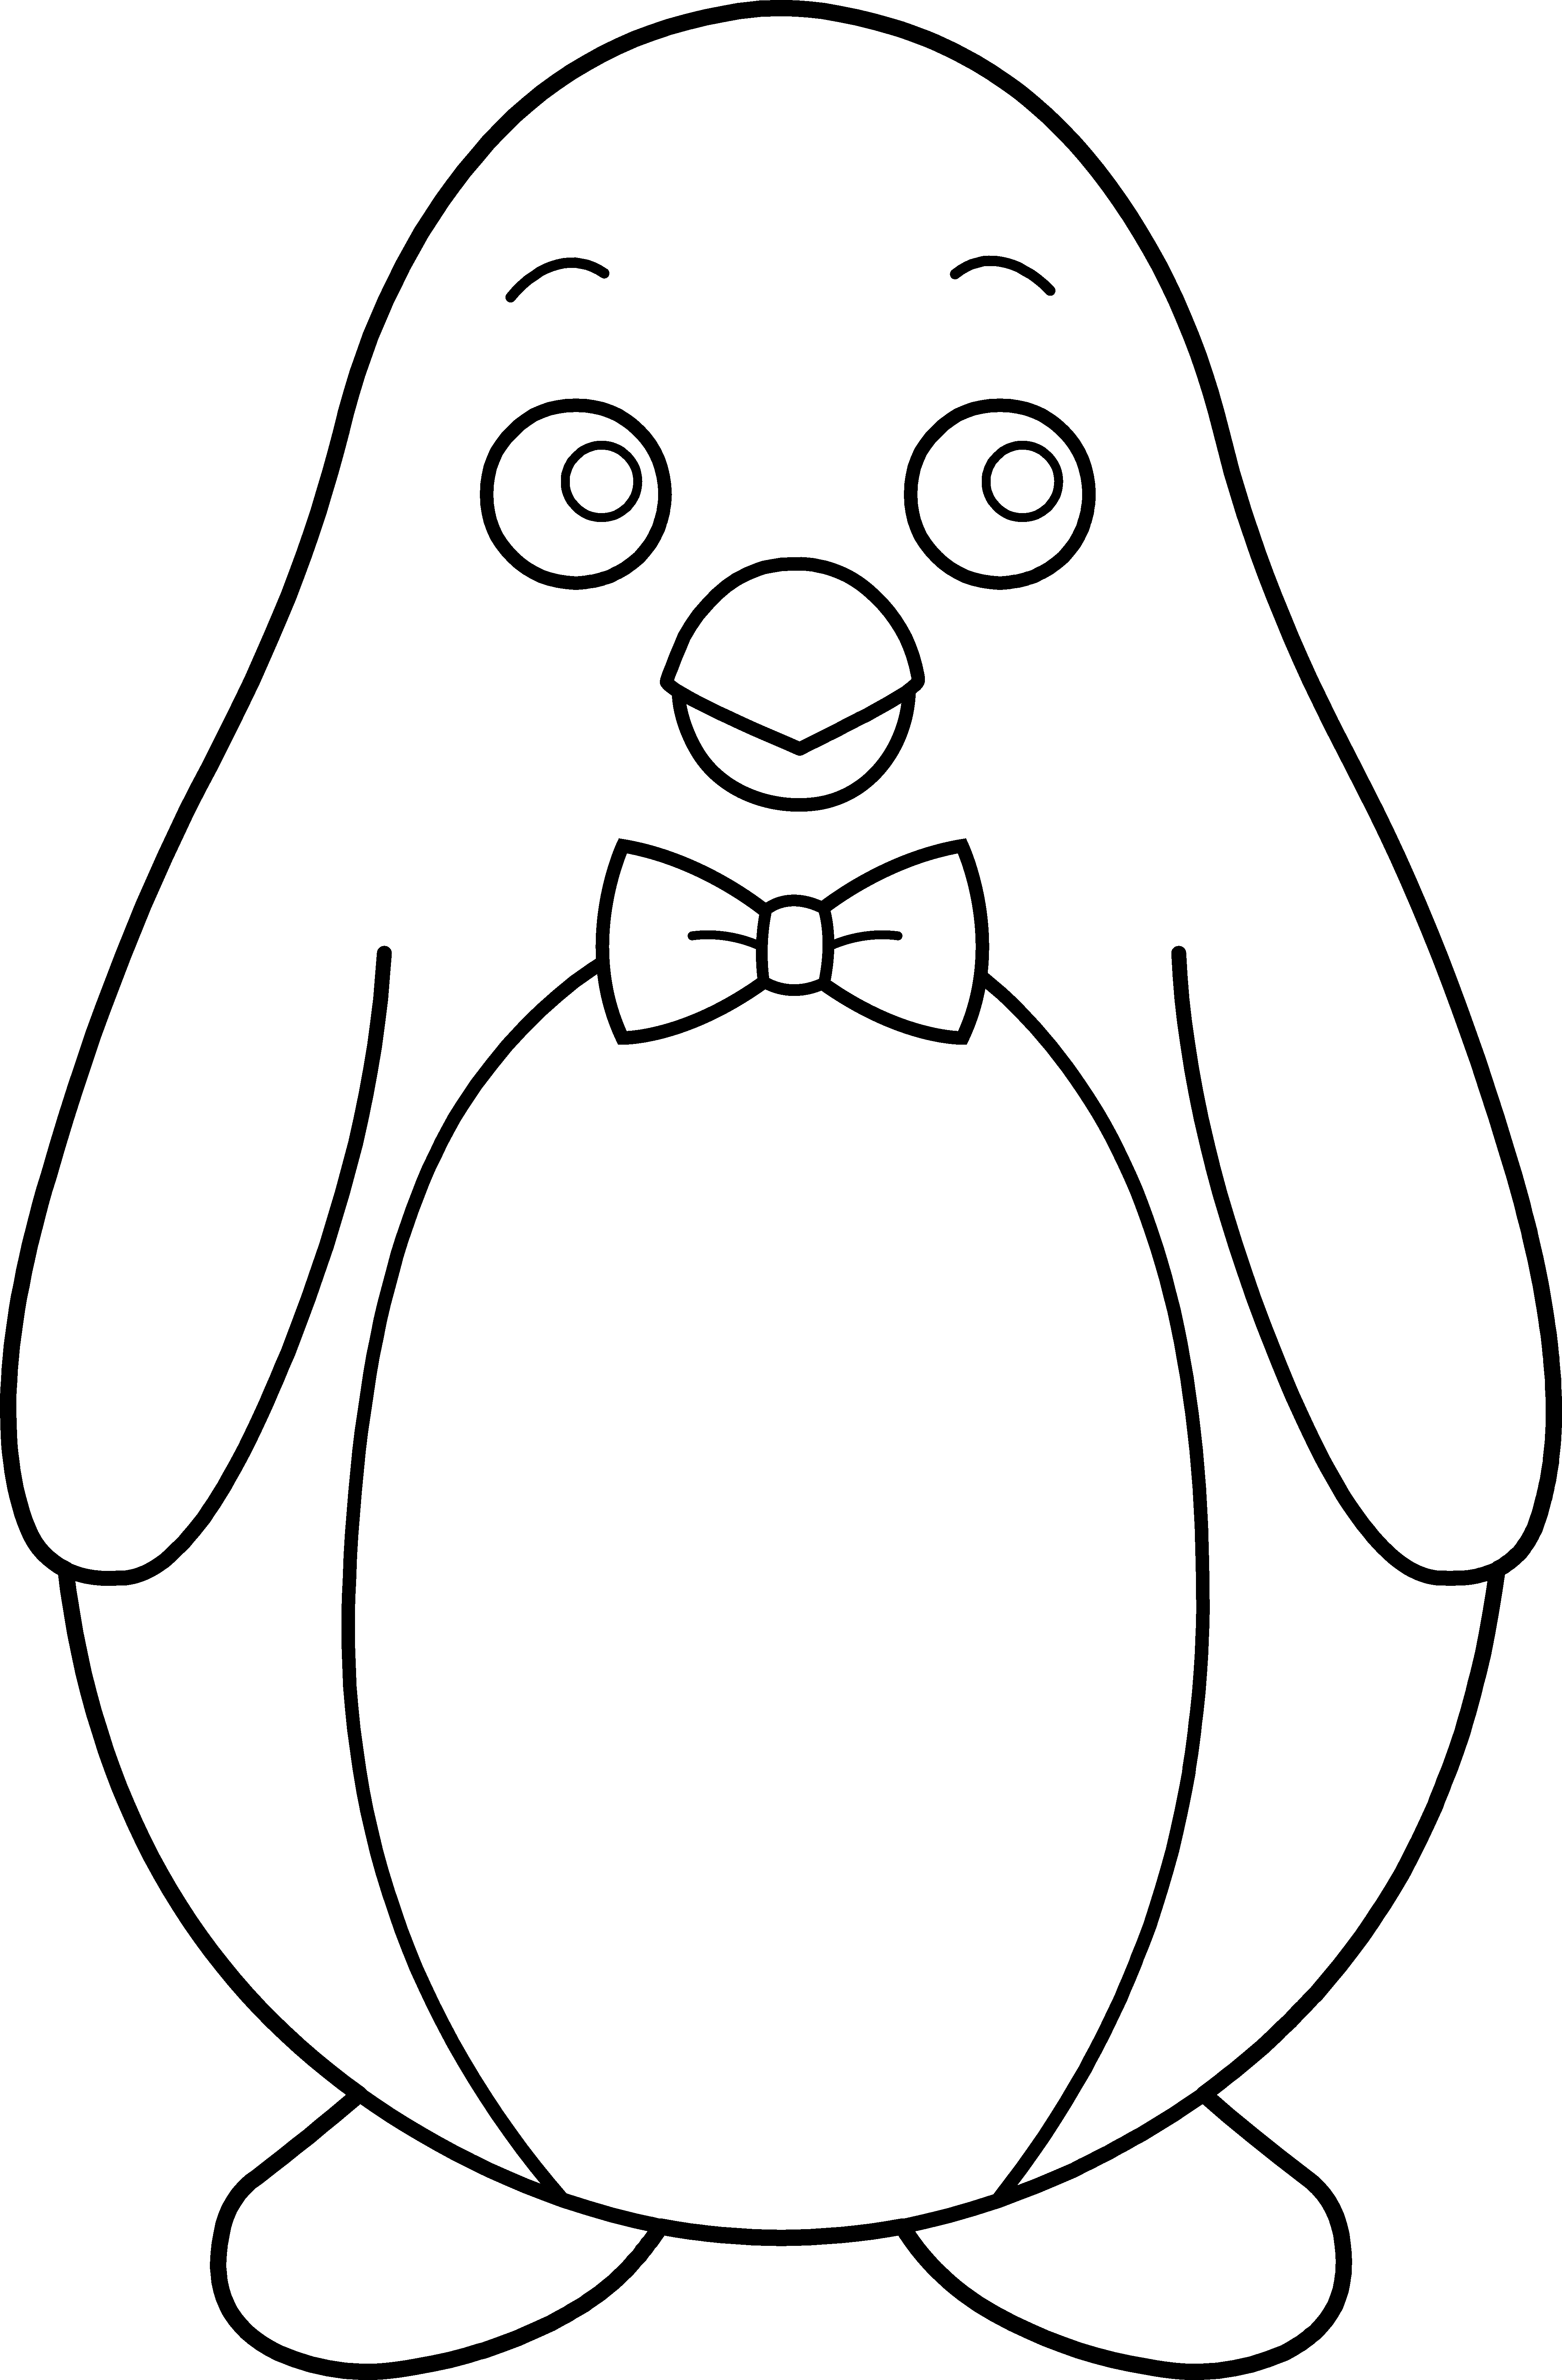 Penguin clip art black and white. Awesome clipart collection digital